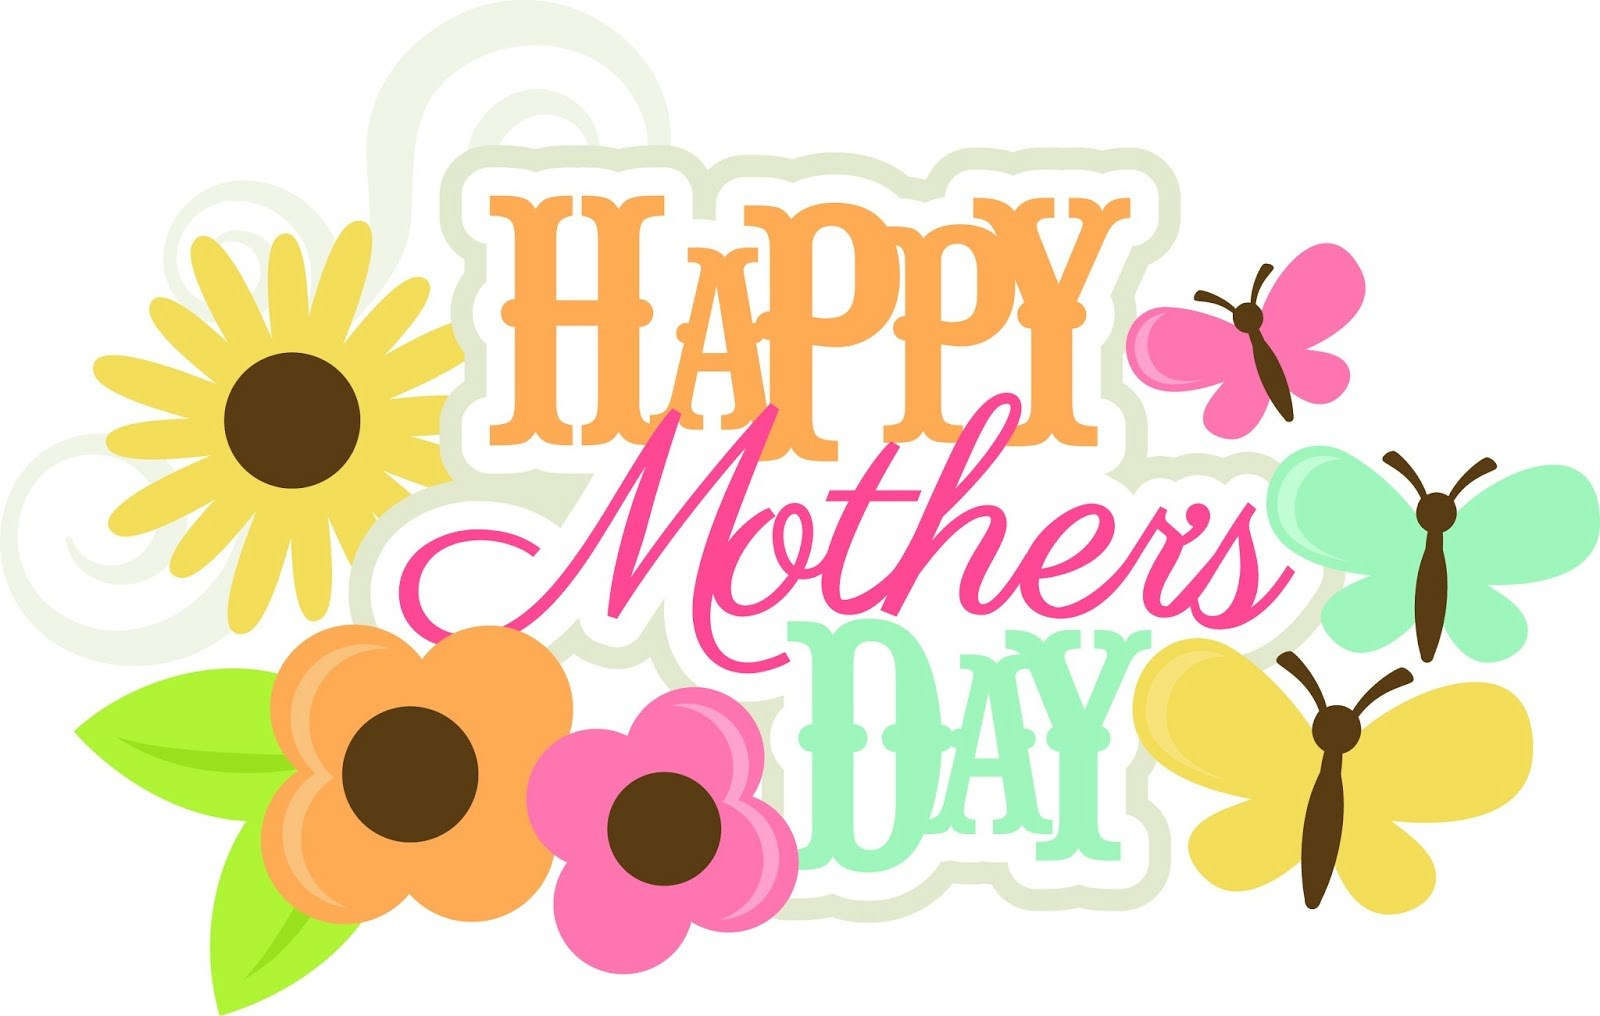 Happy mother-s day clipart images svg transparent download Happy Mothers Day Clipart 2020, Happy Mothers Day Images, Mothers ... svg transparent download